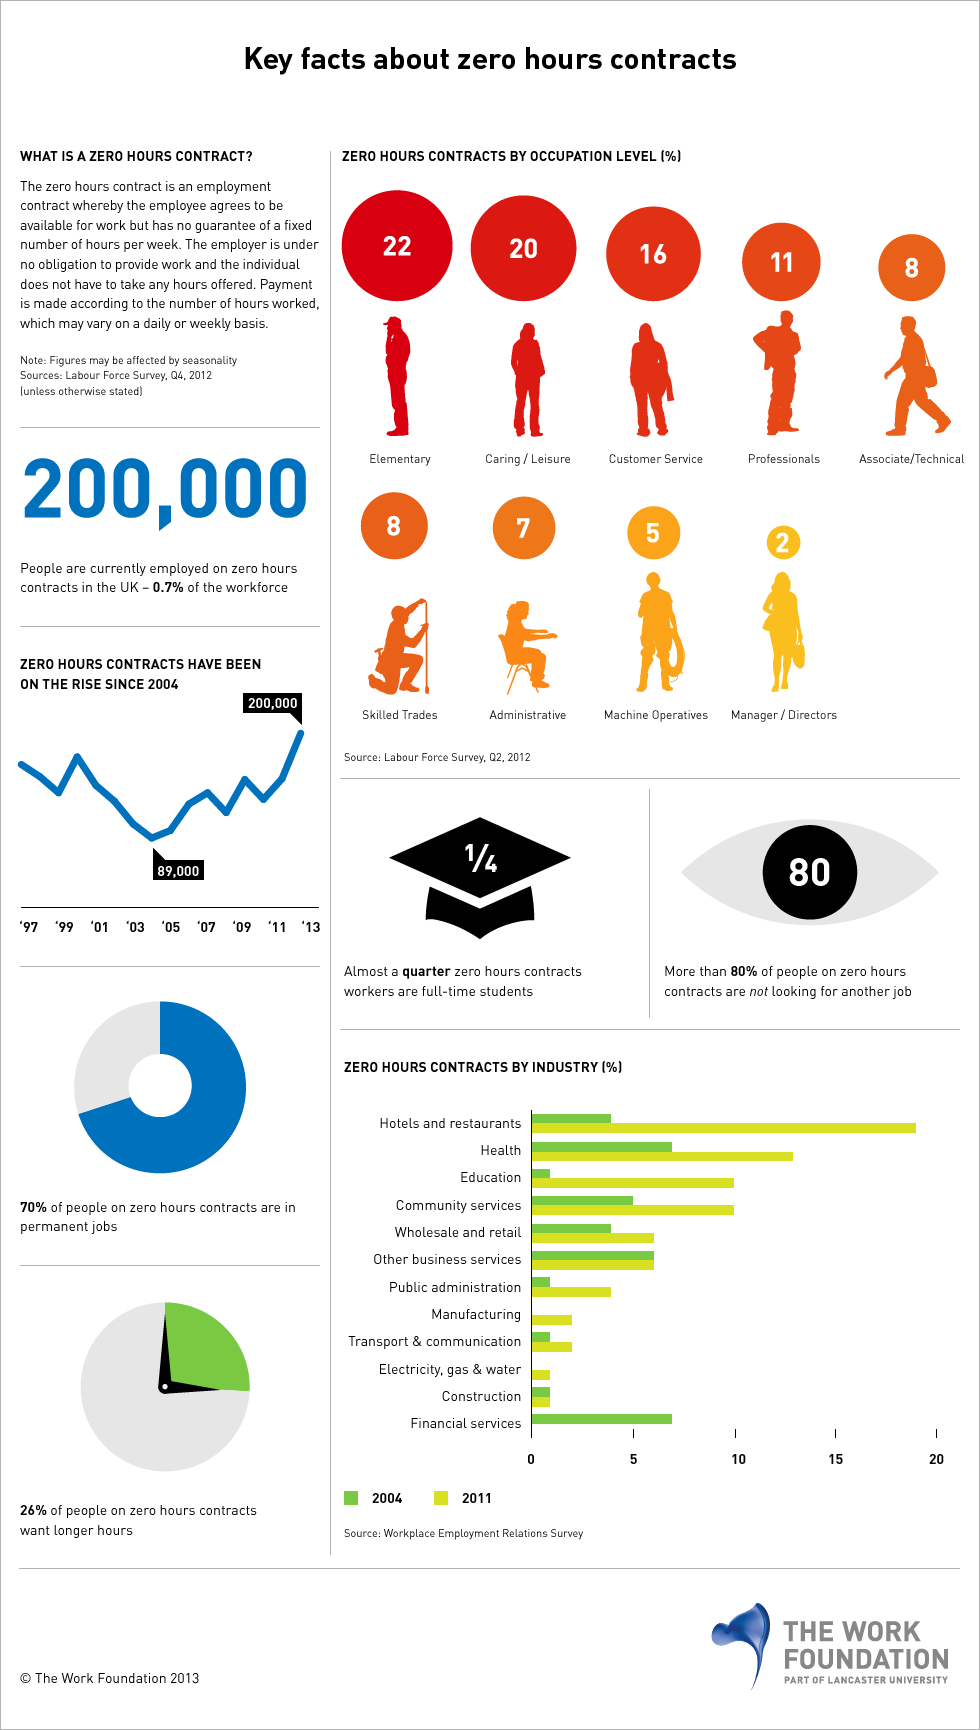 The Work Foundation has recently produced an infographic